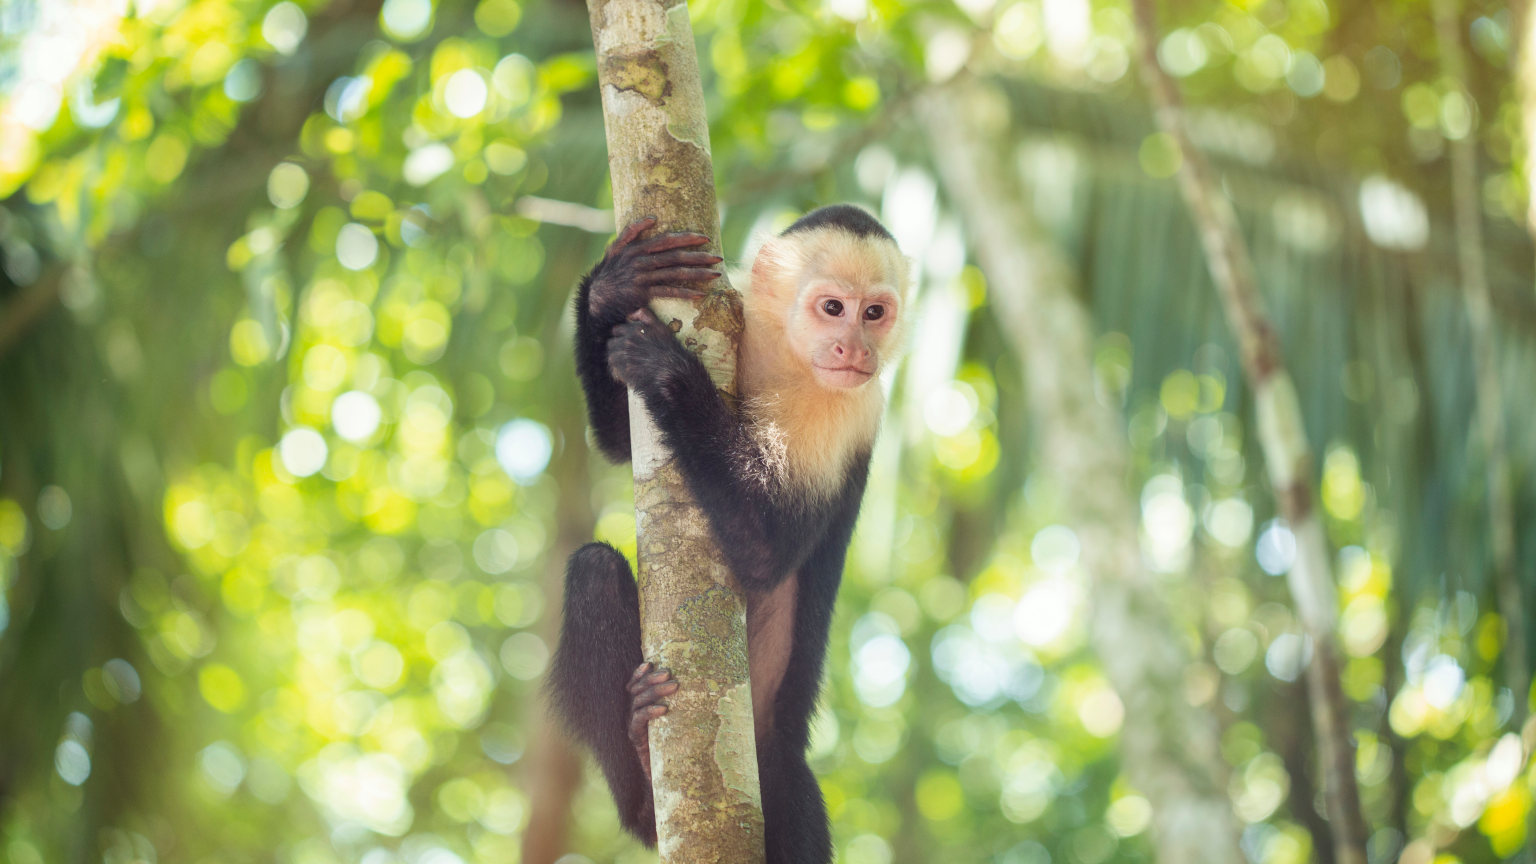 Costa-Rica-Manuel-Antonio-National-Park-White-Faced-Monkey